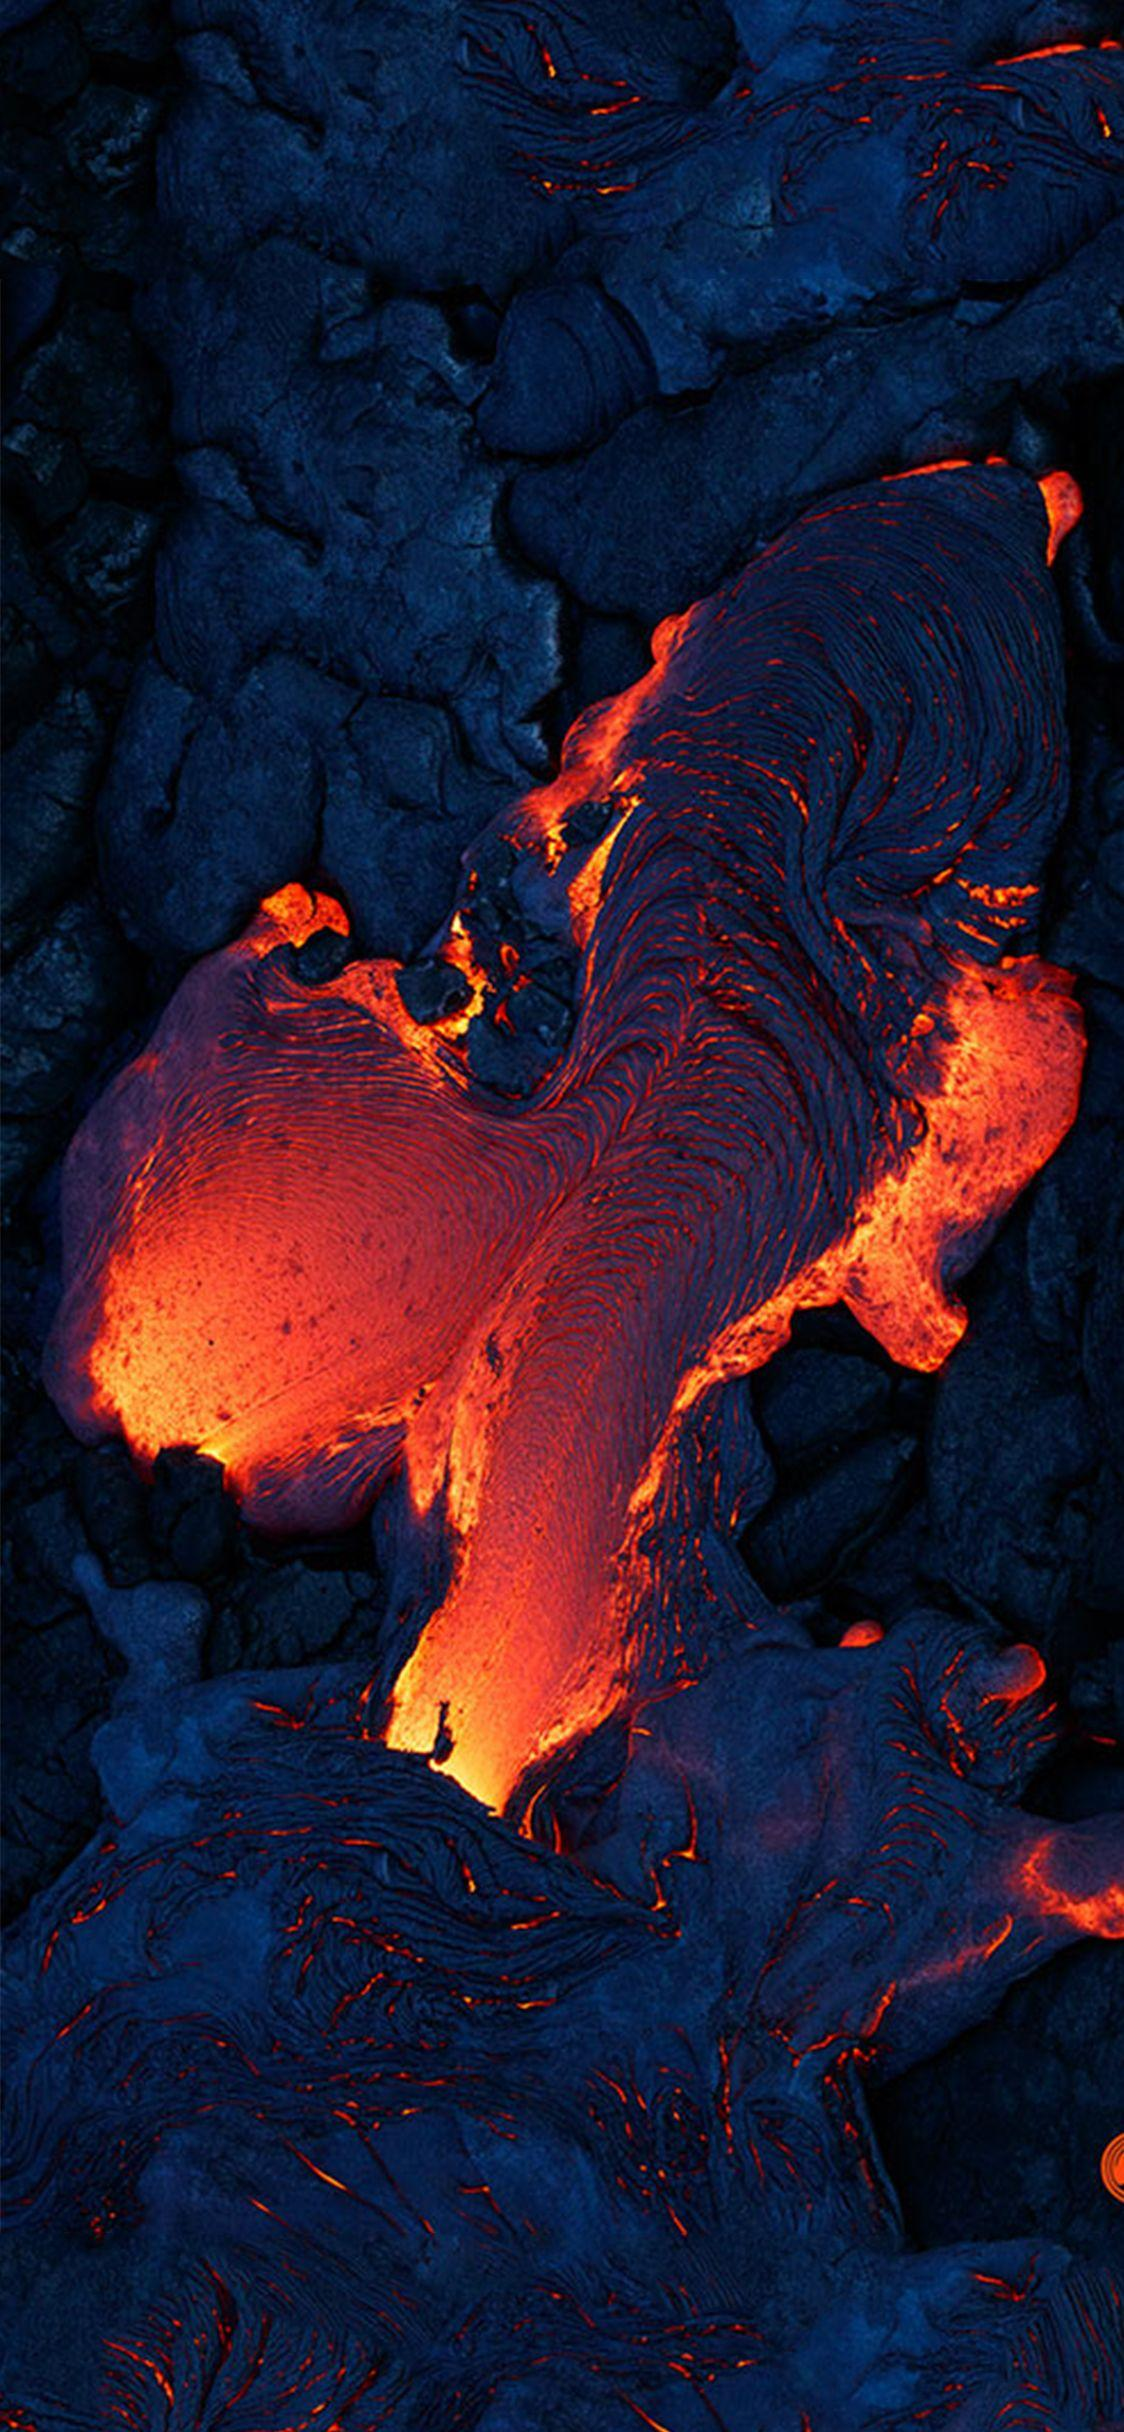 Best volcano wallpapers for iPhone x – iOSwall